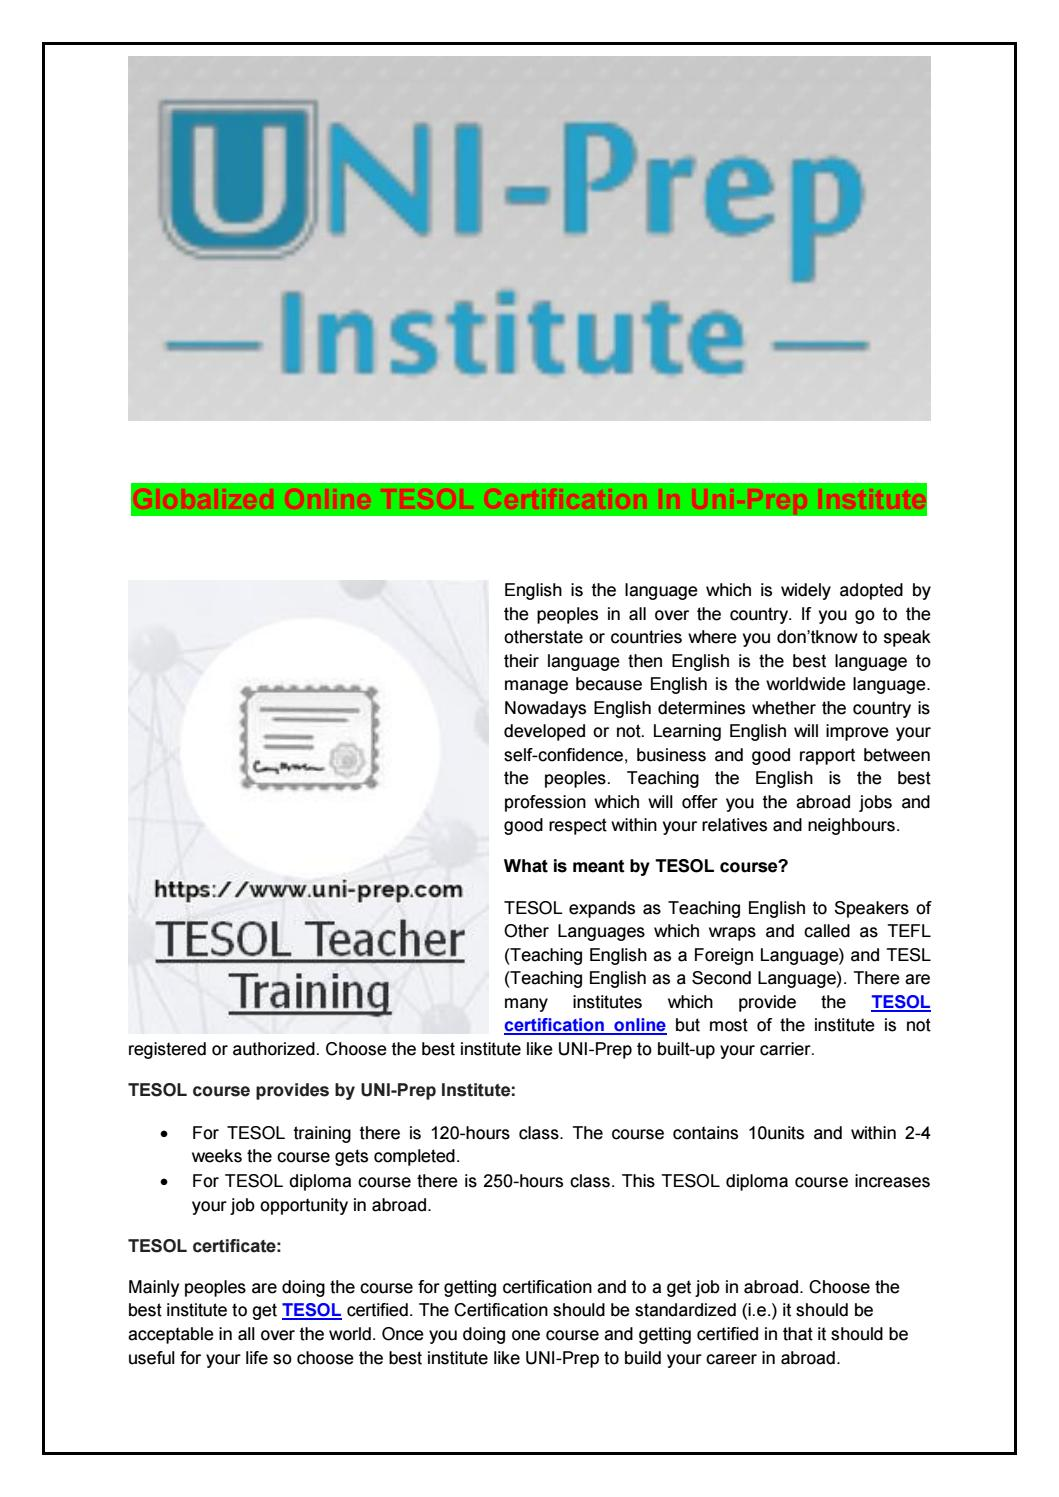 Globalized Online Tesol Certification In Uni Prep Institute By